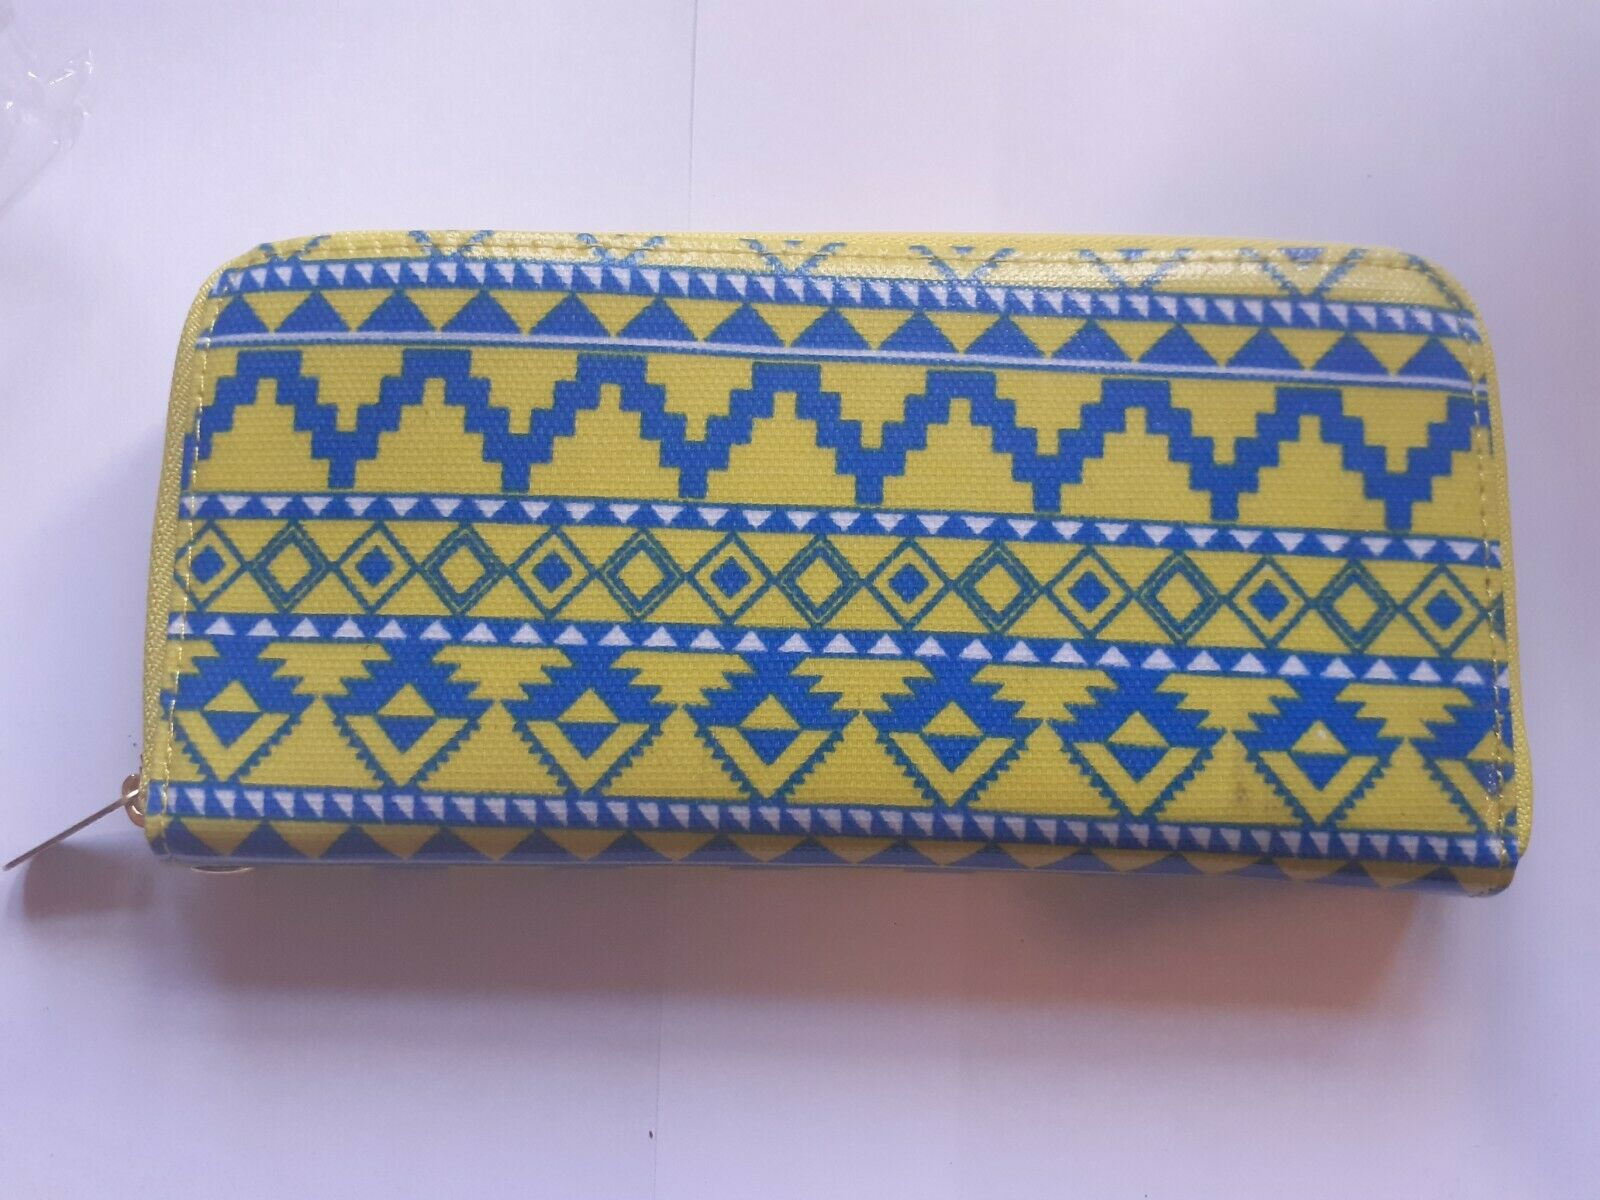 Brand New With Tags Women's Purse Blue Yellow Geometric With Strap